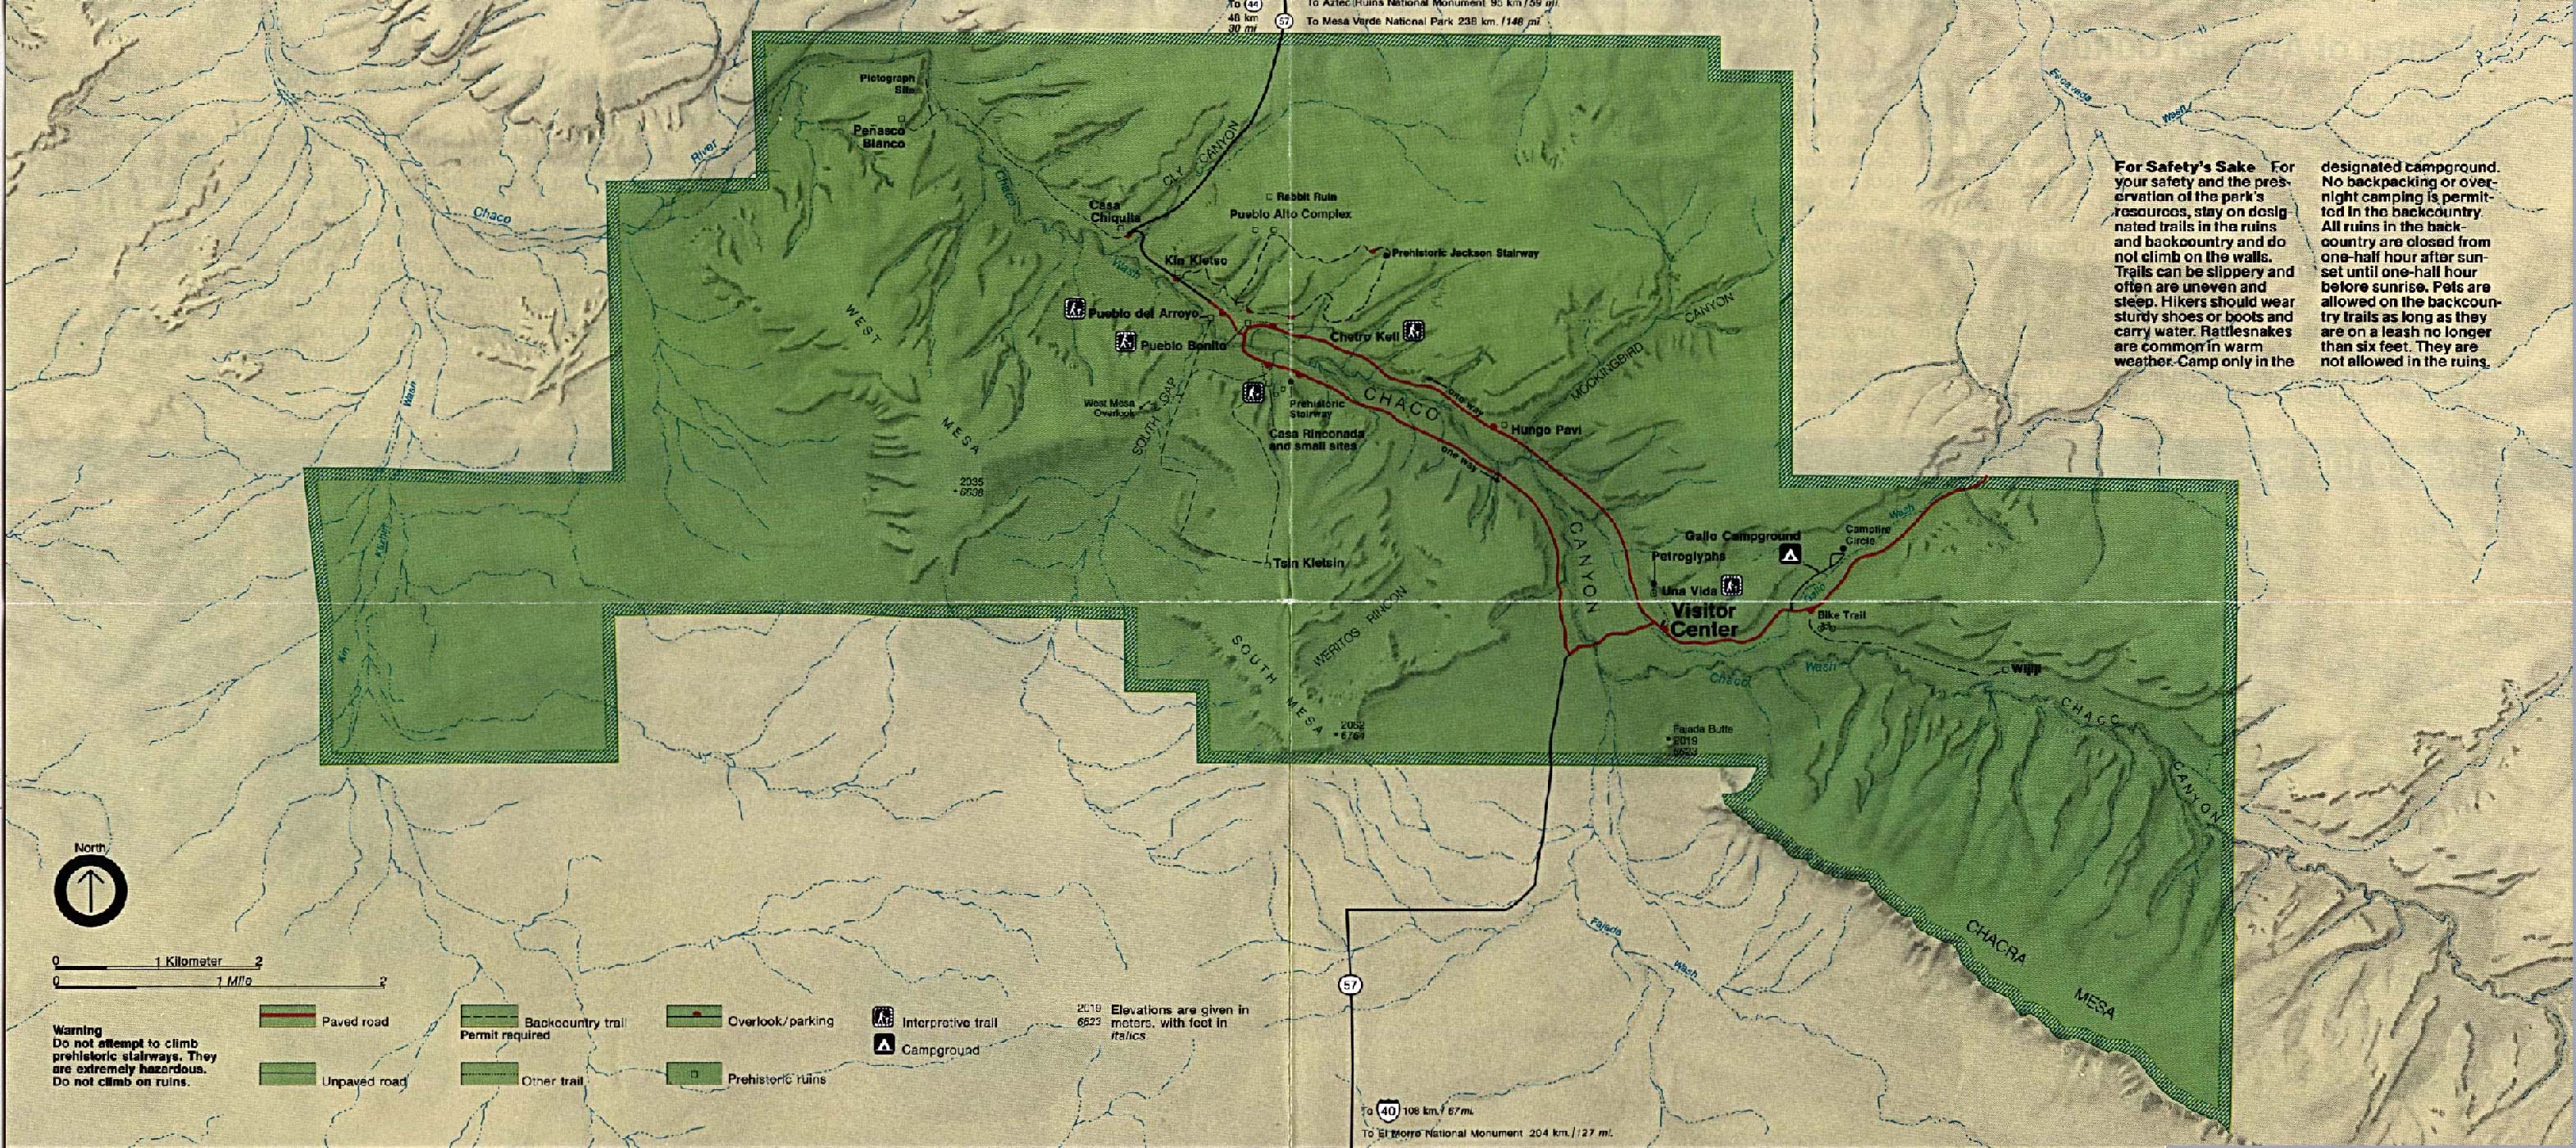 Maps of United States National Parks, Monuments and Historic Sites Chaco Culture National Historic Park [New Mexico] (Park Map) 1995 (1MB)